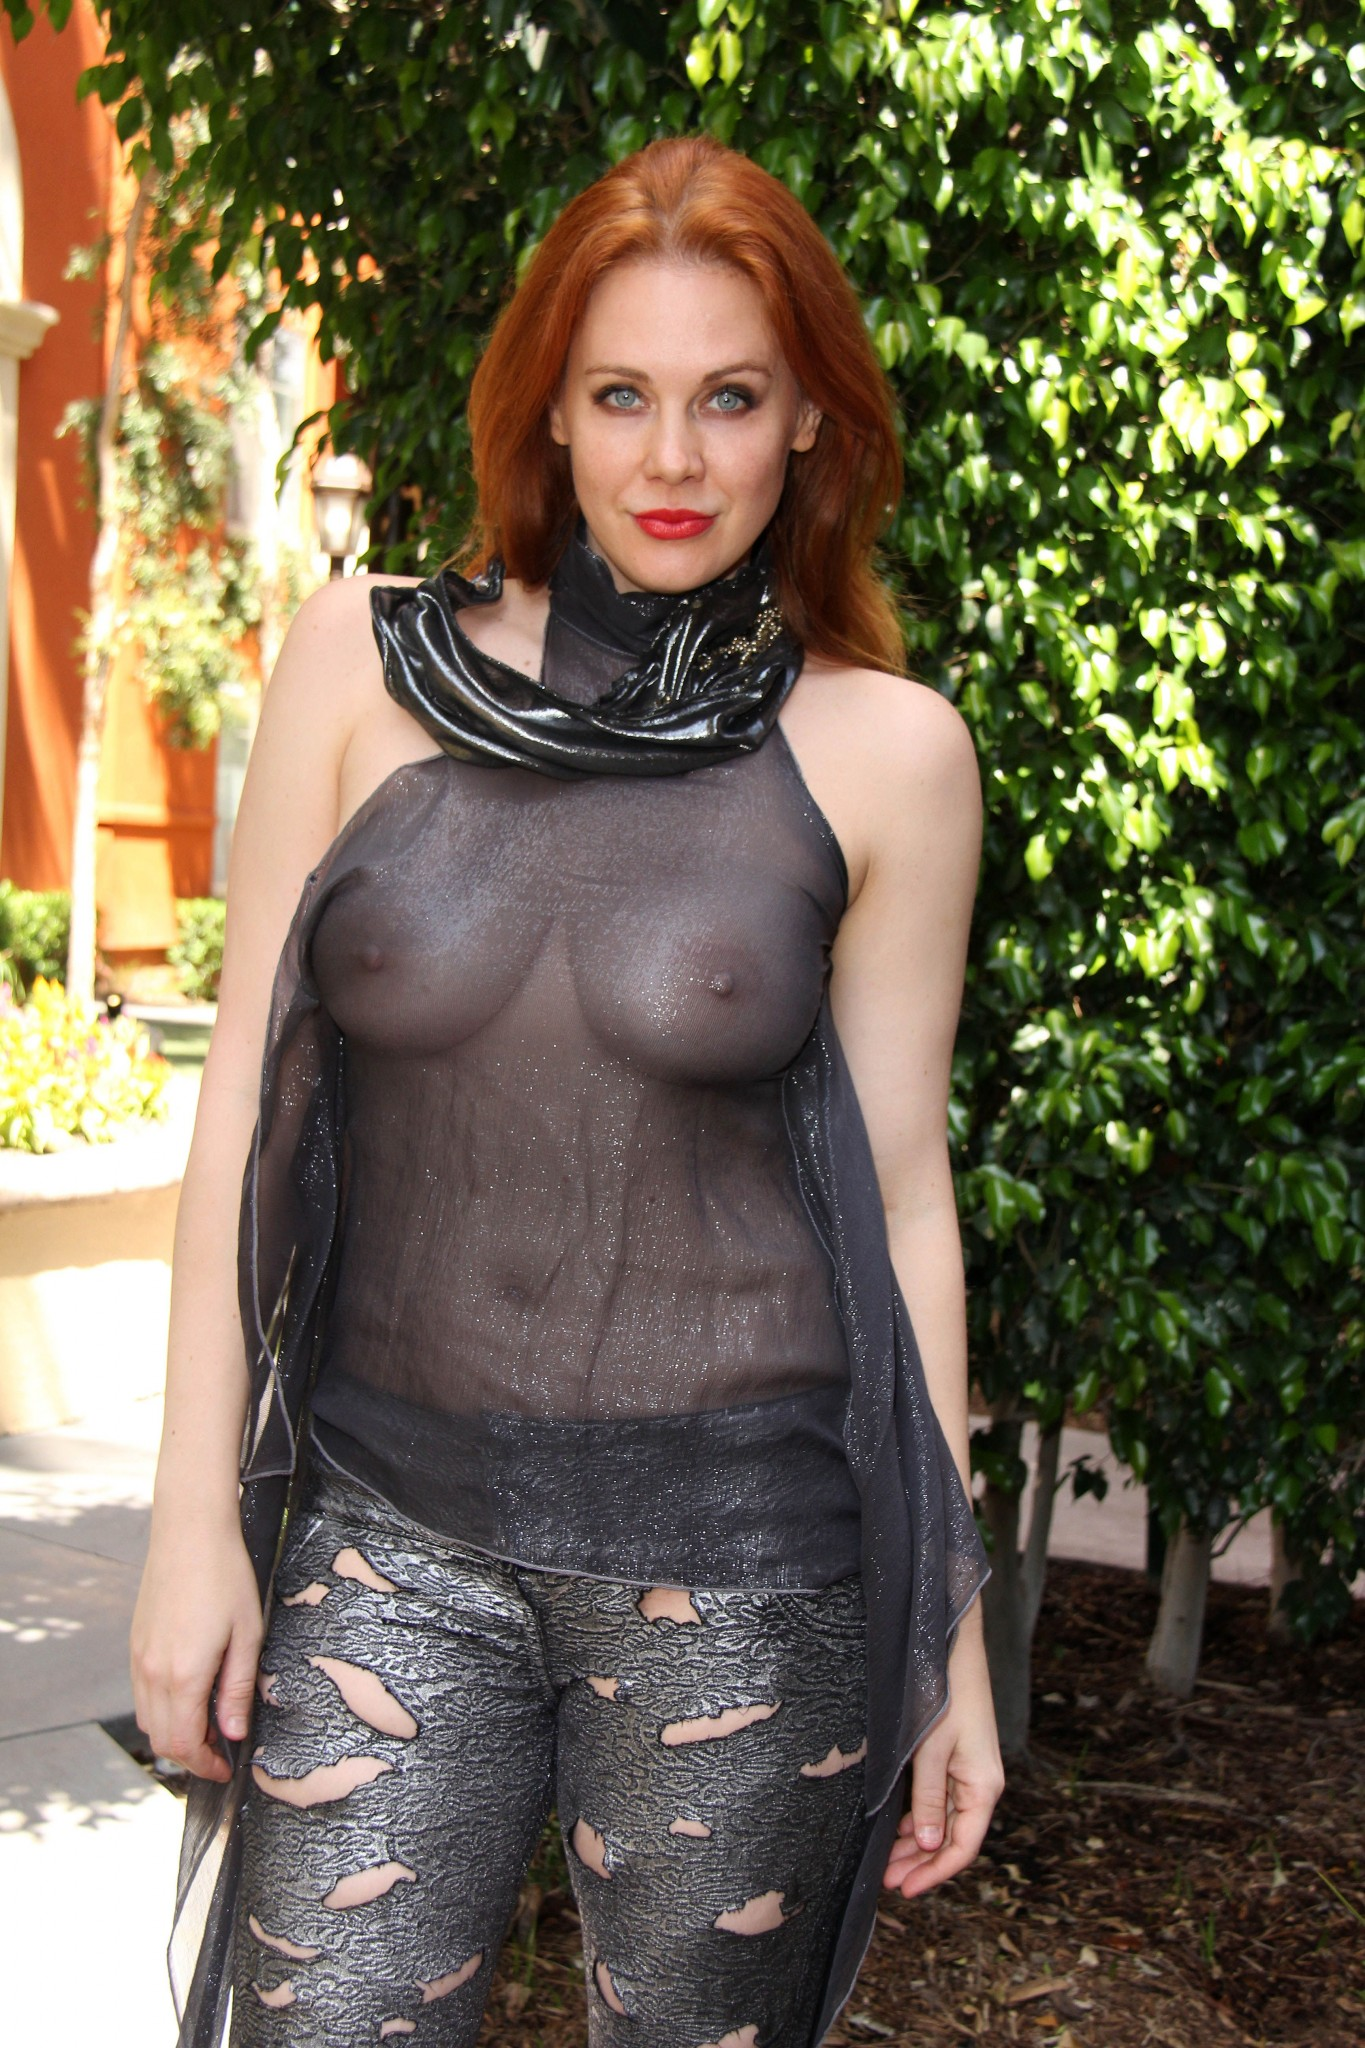 Maitland Ward see through cosplay lingerie at Comic Con